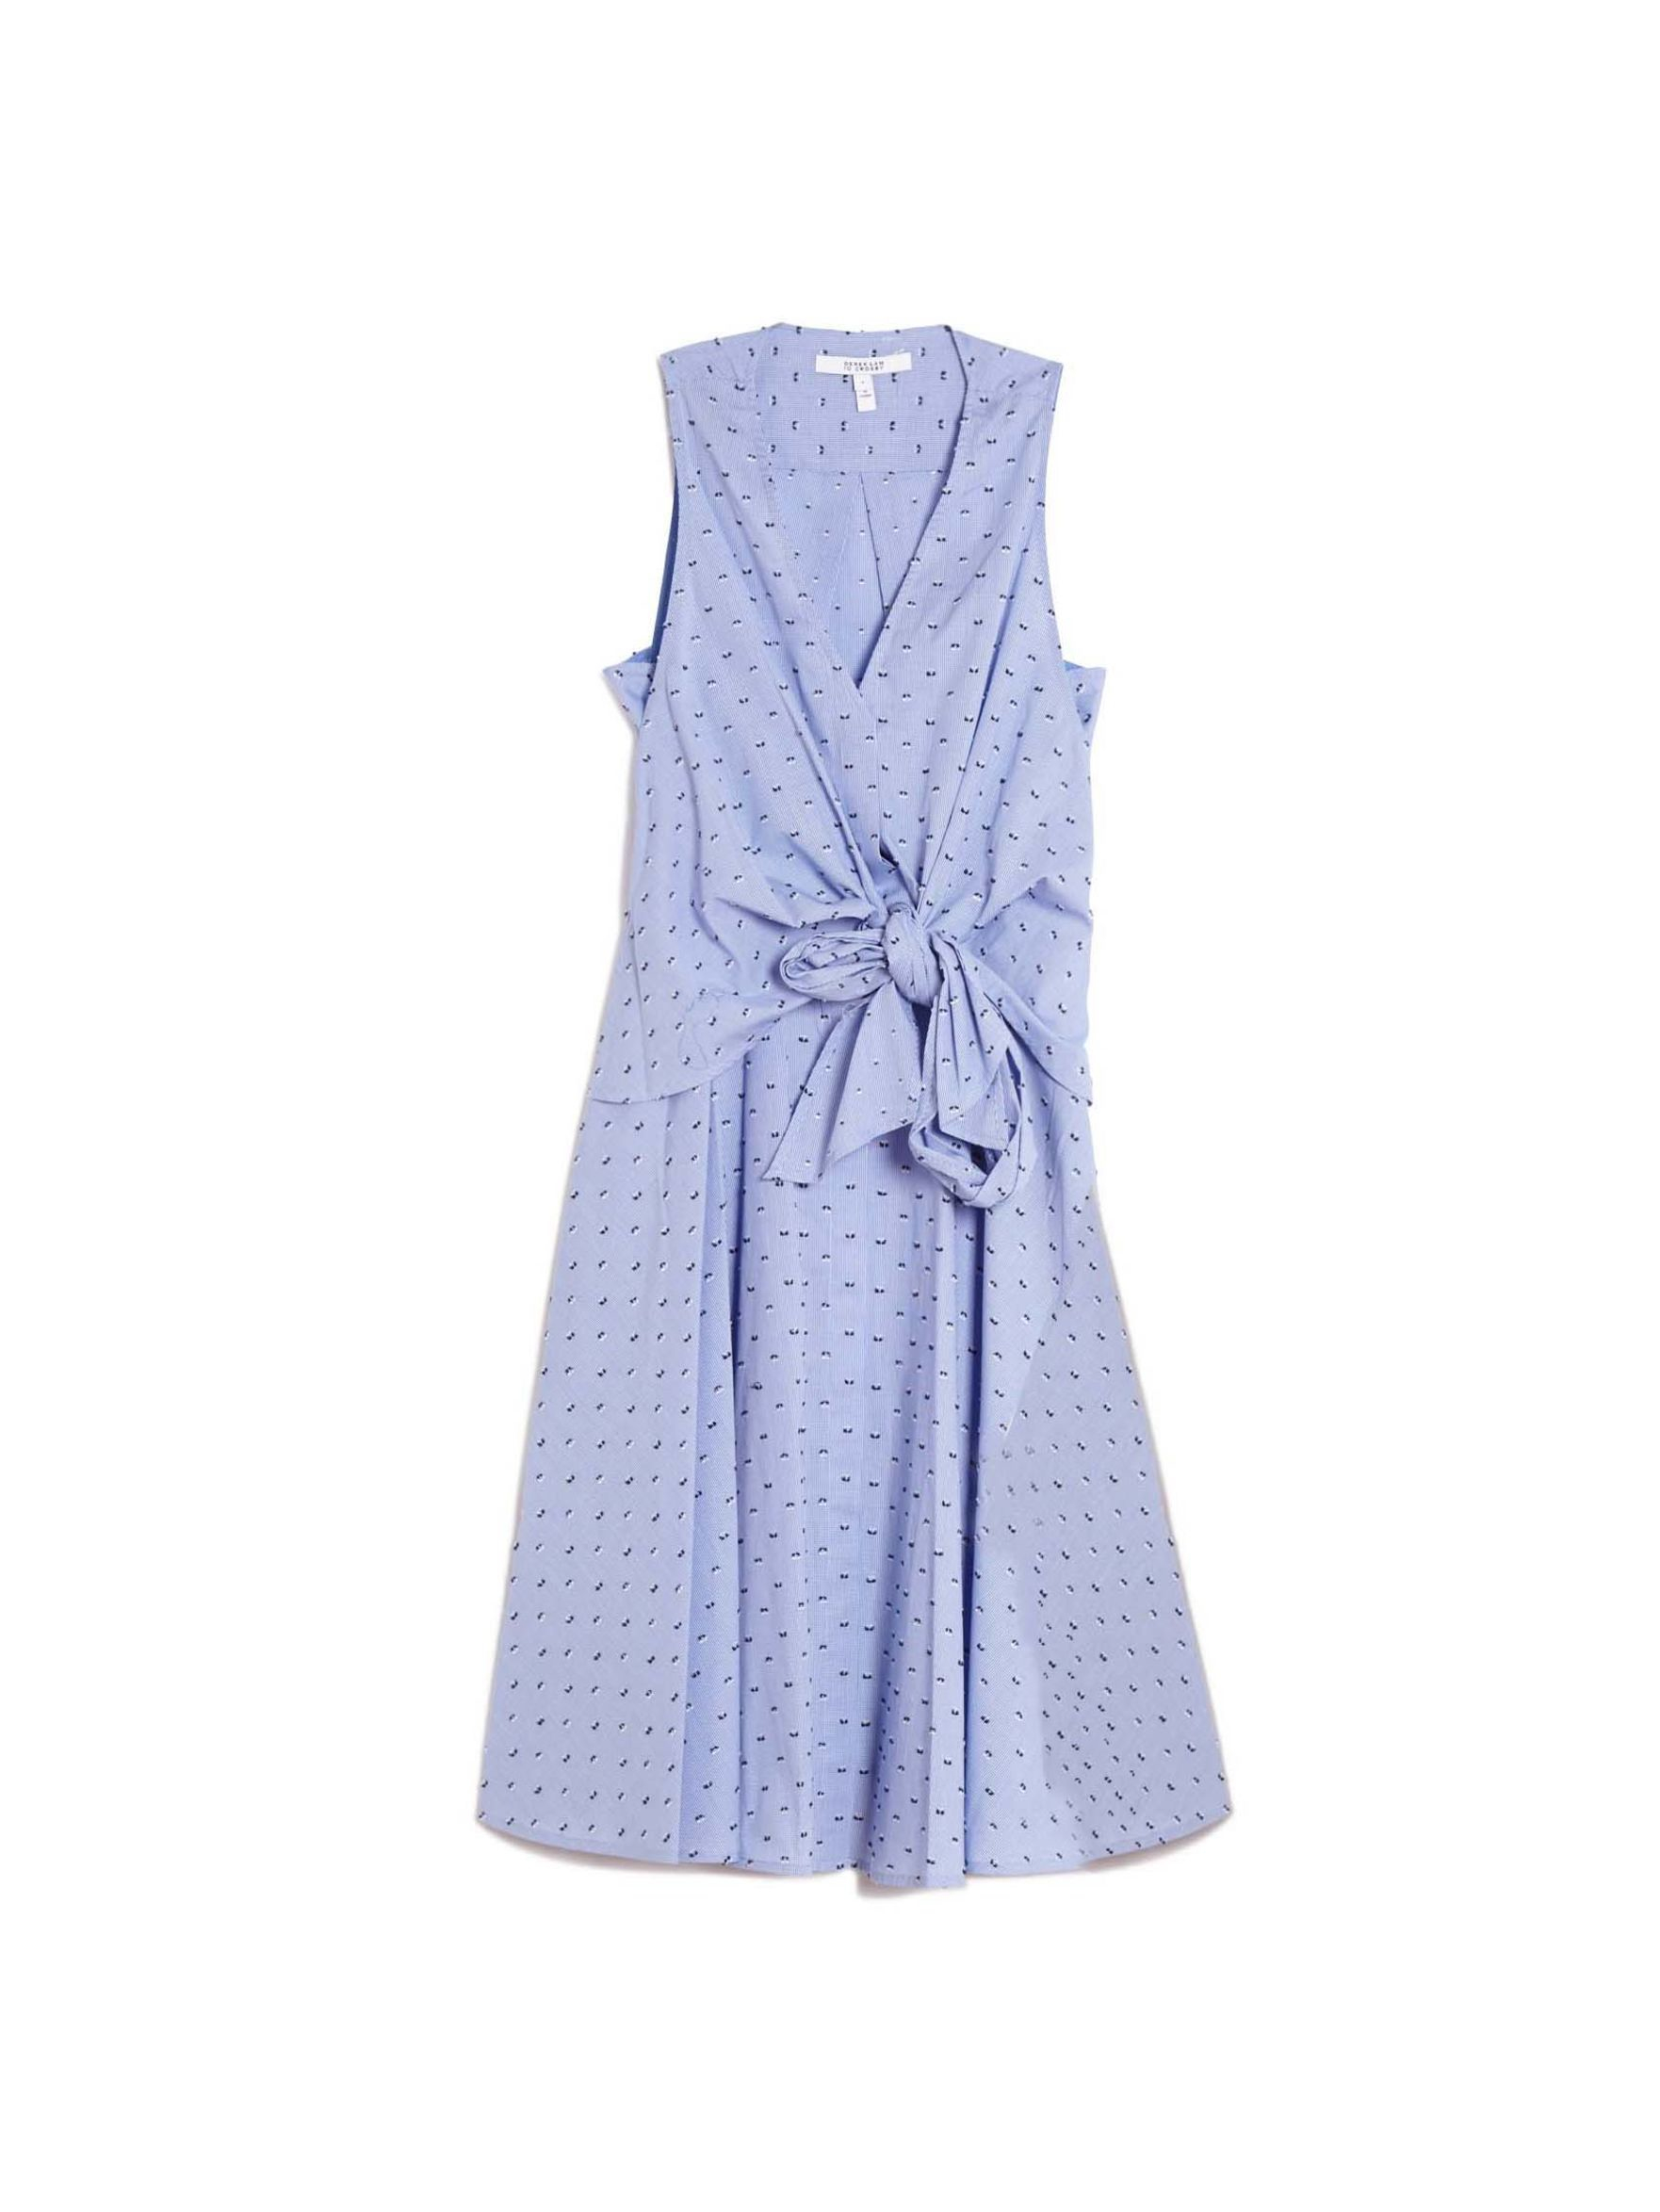 10 crosby derek lam cupped dot dress in blue lyst for Derek lam 10 crosby shirt dress